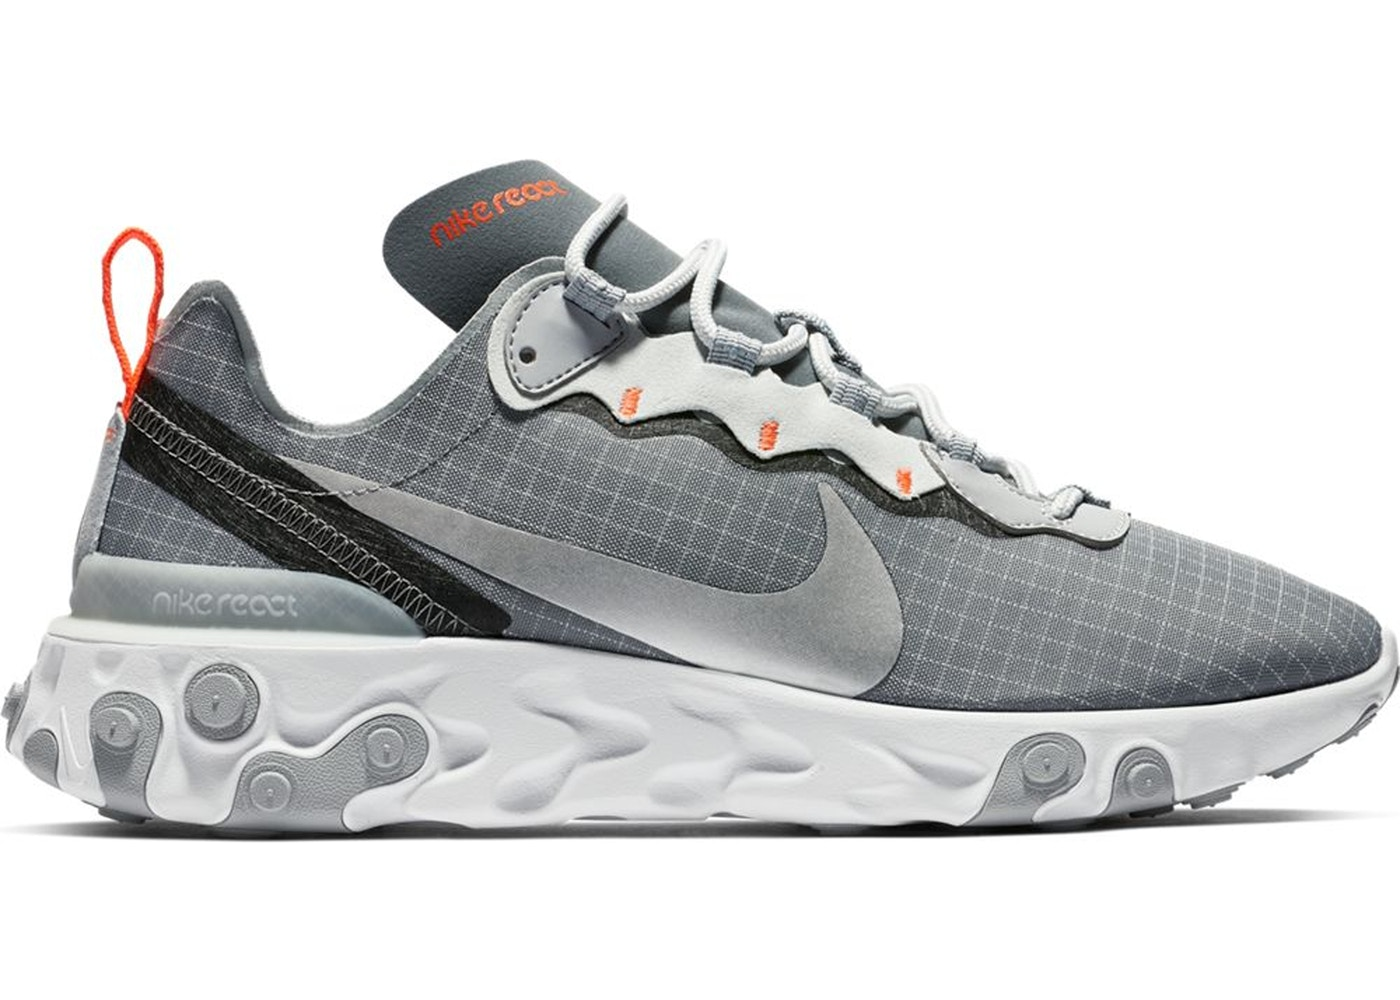 2c028214dc69 Nike React Element 55 Cool Grey Hyper Crimson